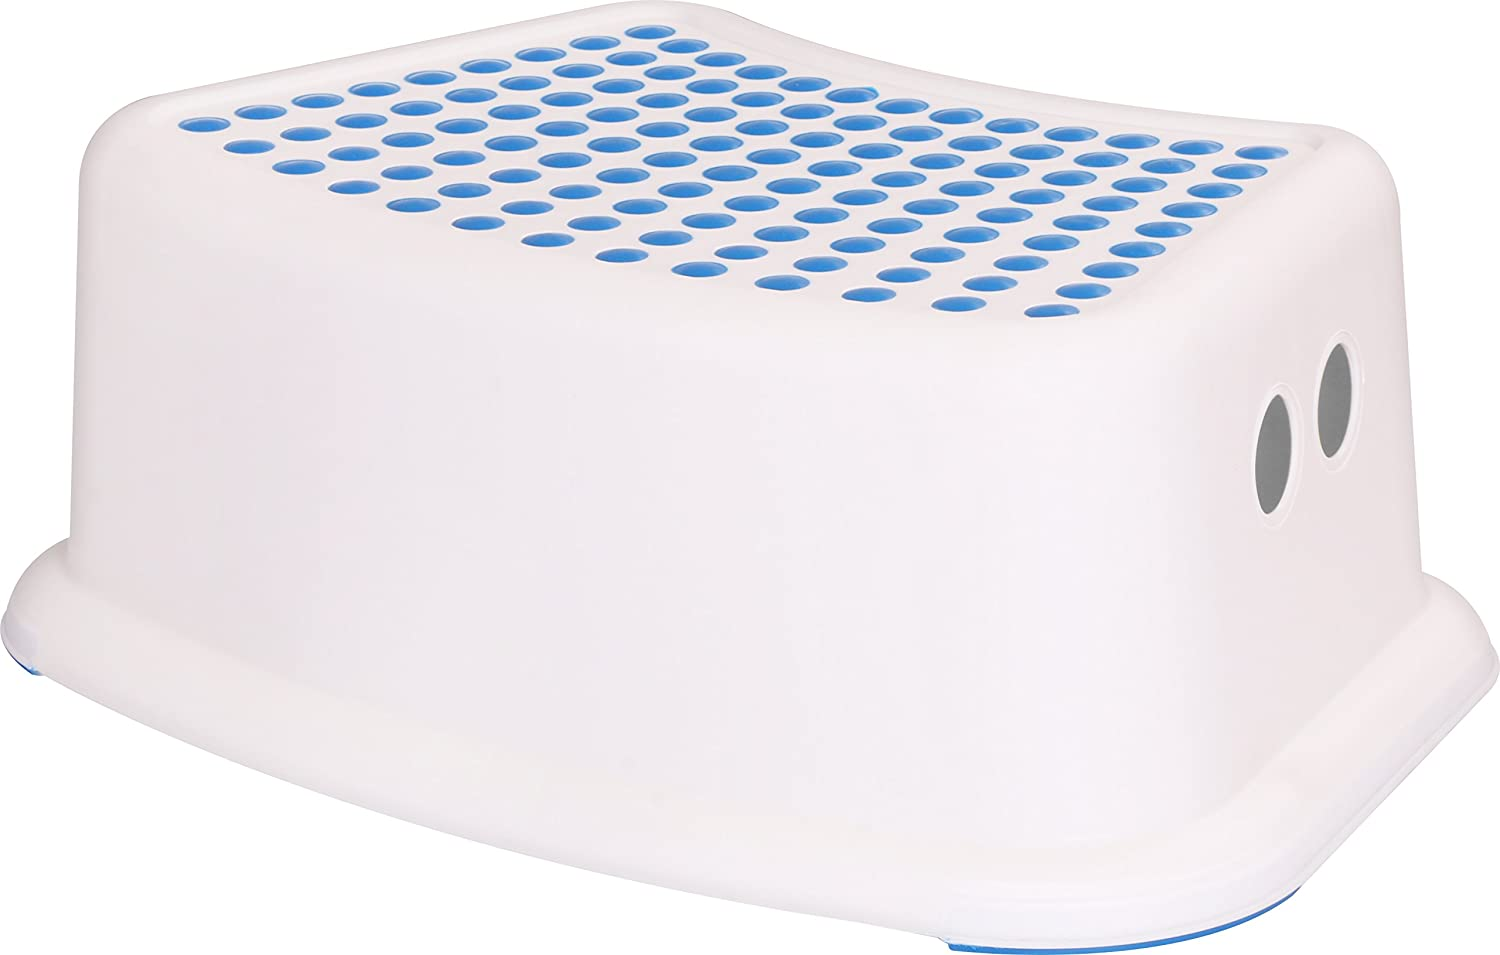 Utopia Home Kids Step Stool Perfect For Potty Training